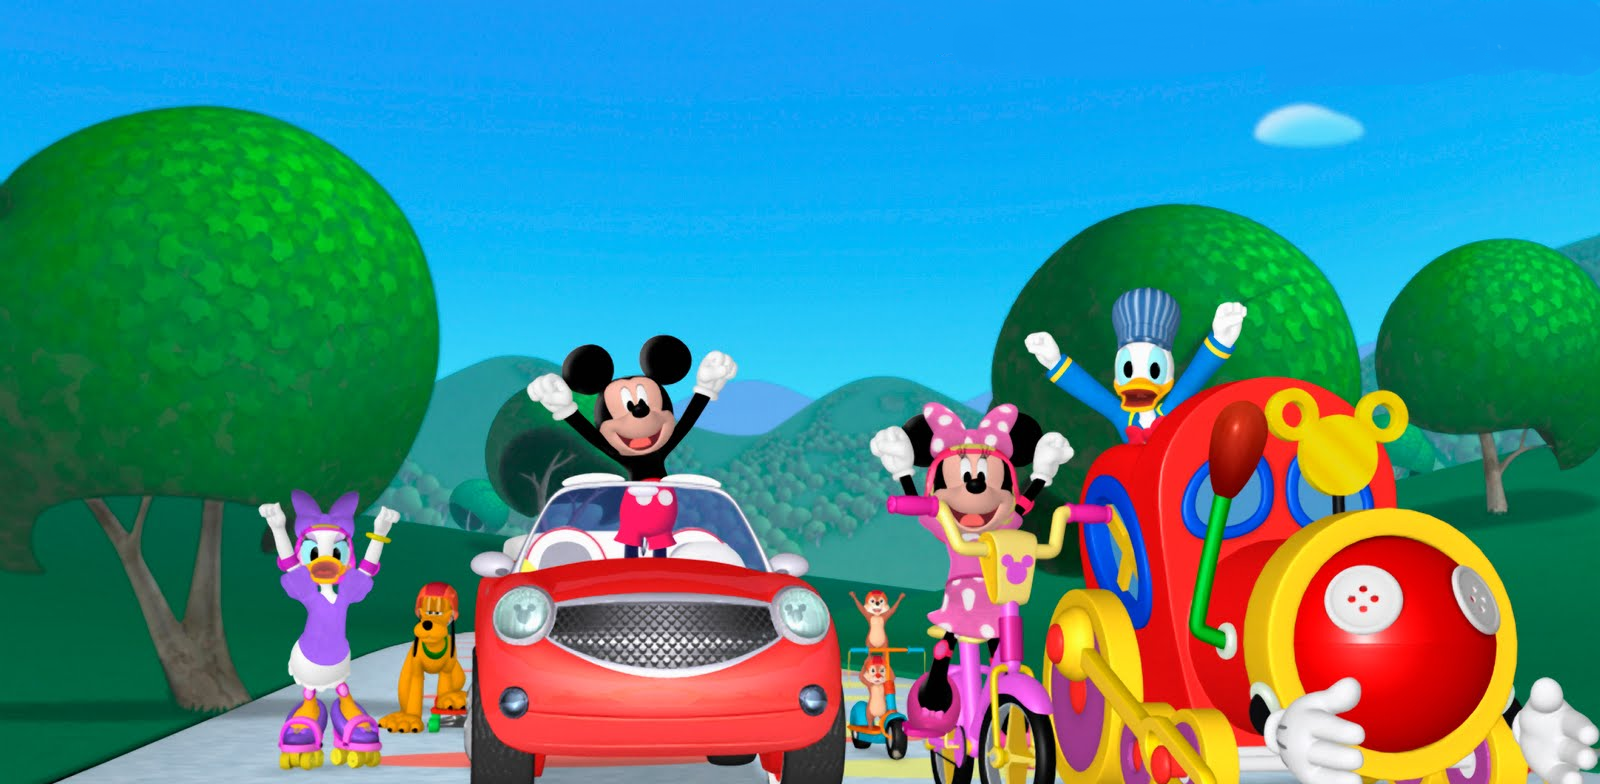 mickey mouse clubhouse wallpaper 1 by rositafresita99 on deviantart mickey mouse clubhouse wallpaper 1 by